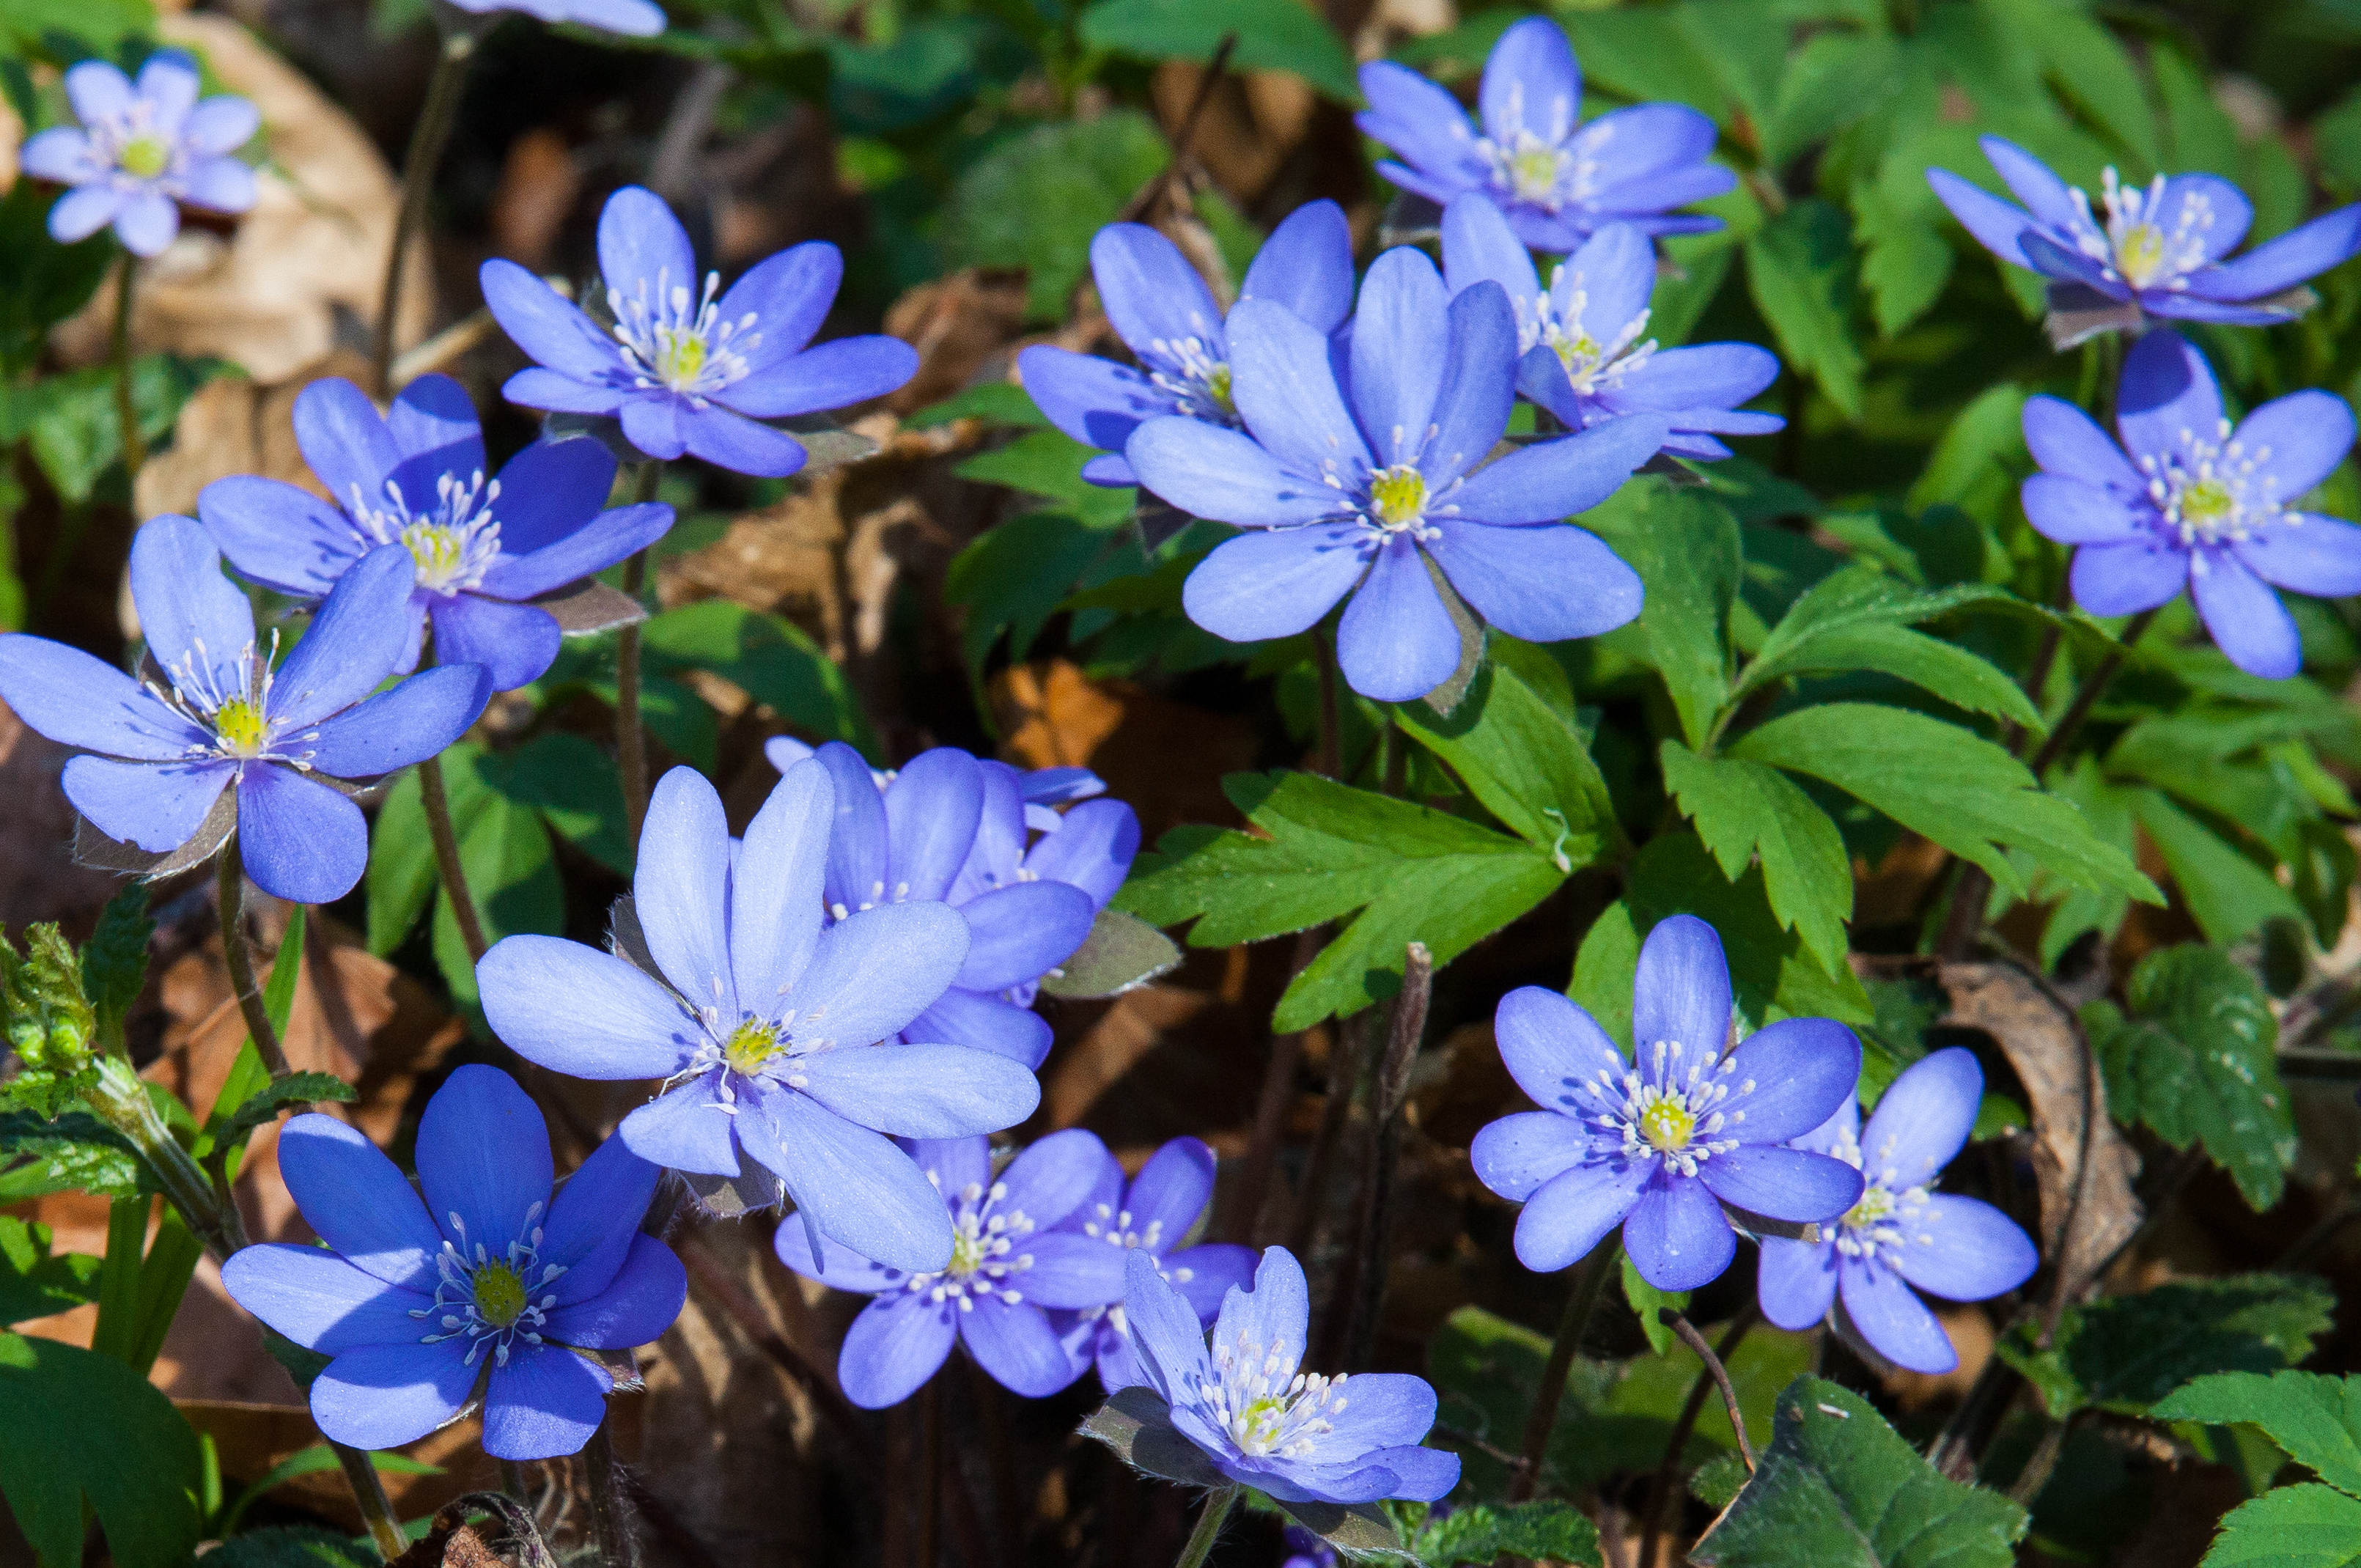 blue flowers in a forest in Lviv region of Ukraine in March 2014, picture 1/2